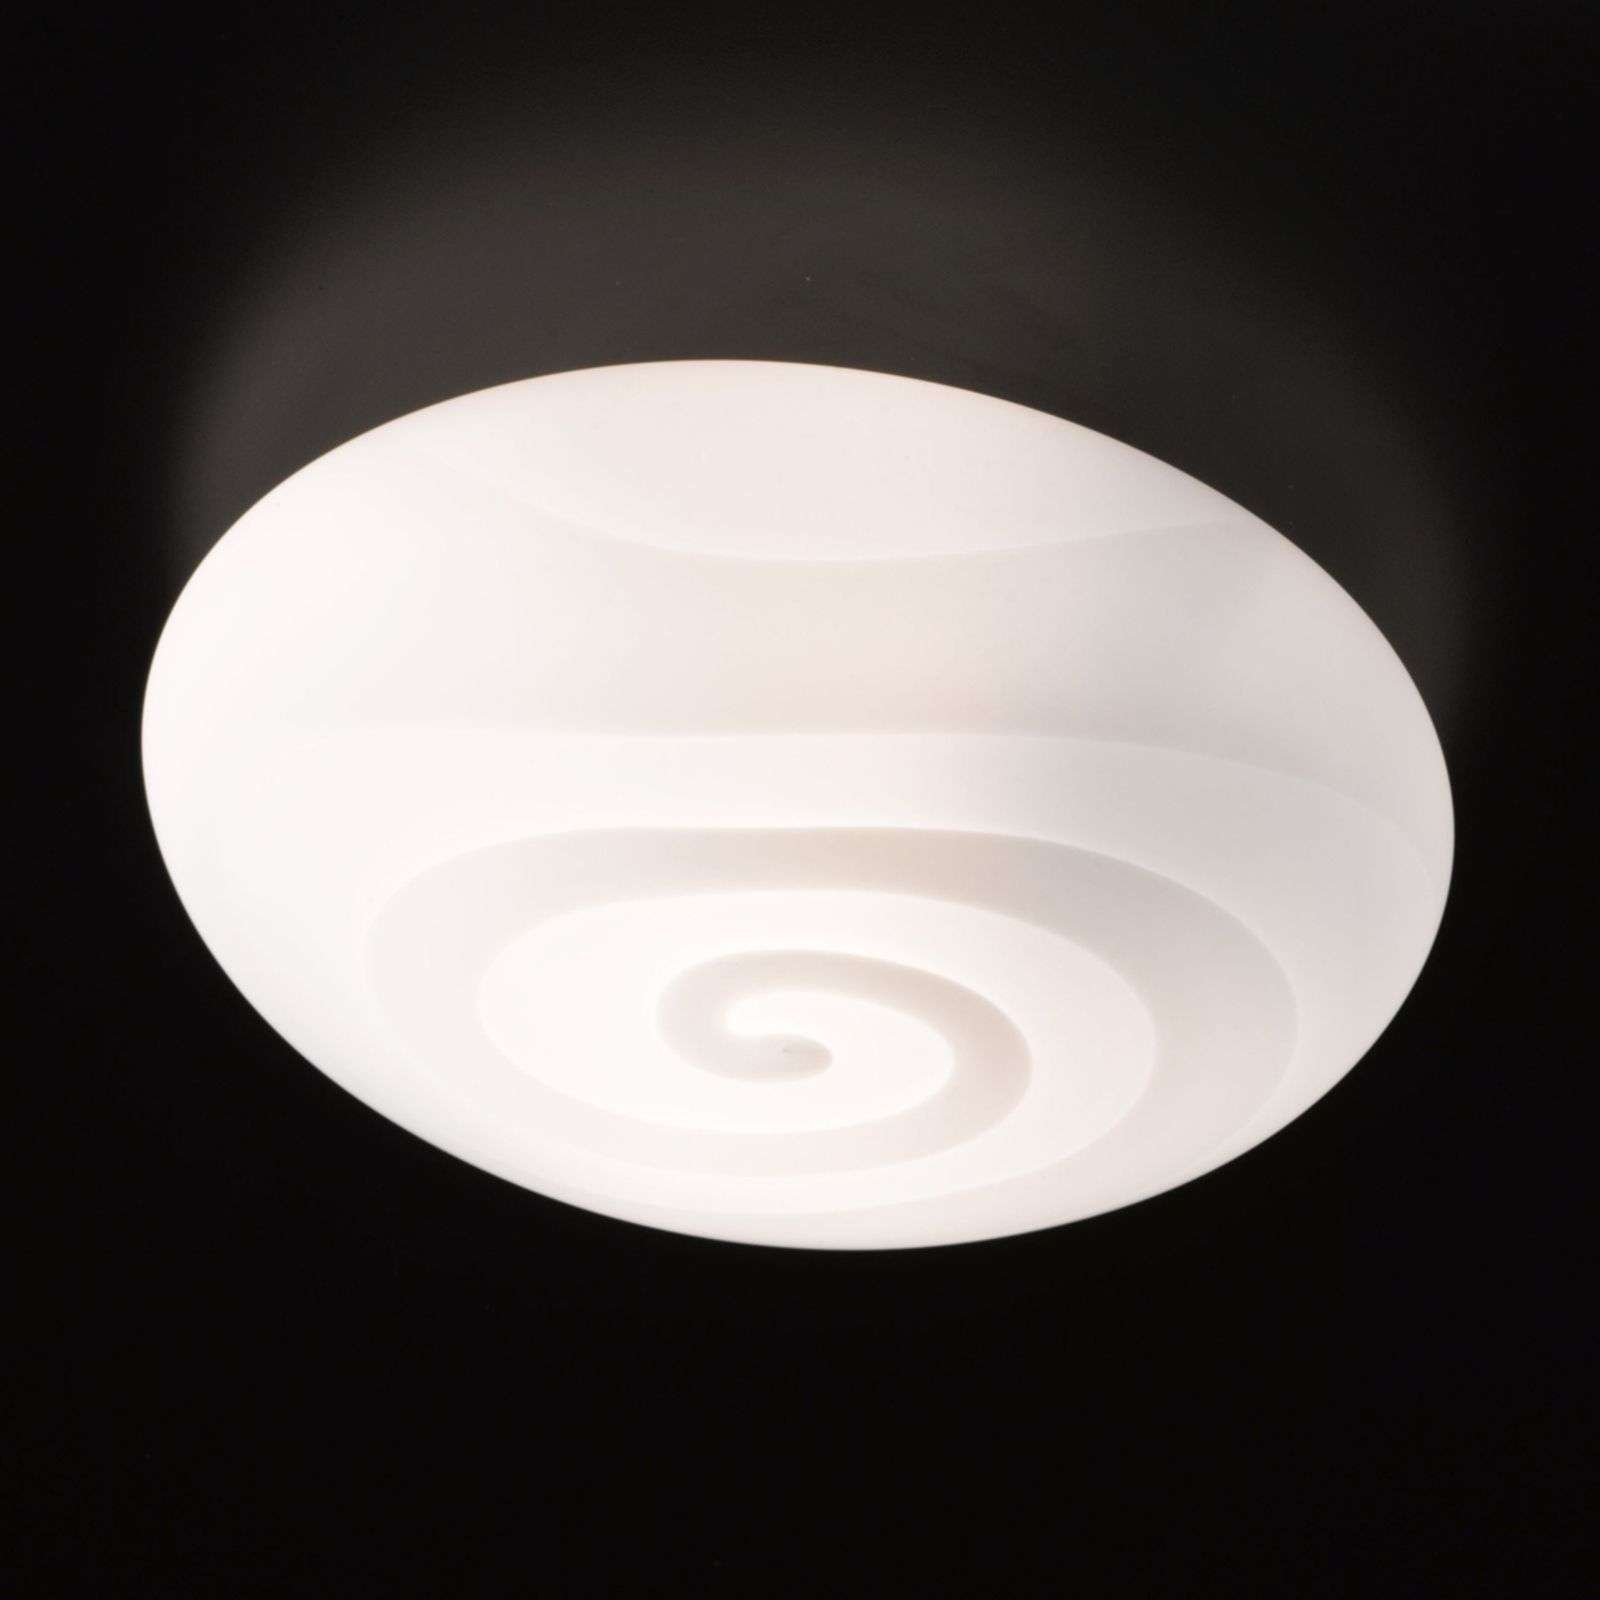 High quality ceiling light Alice 45